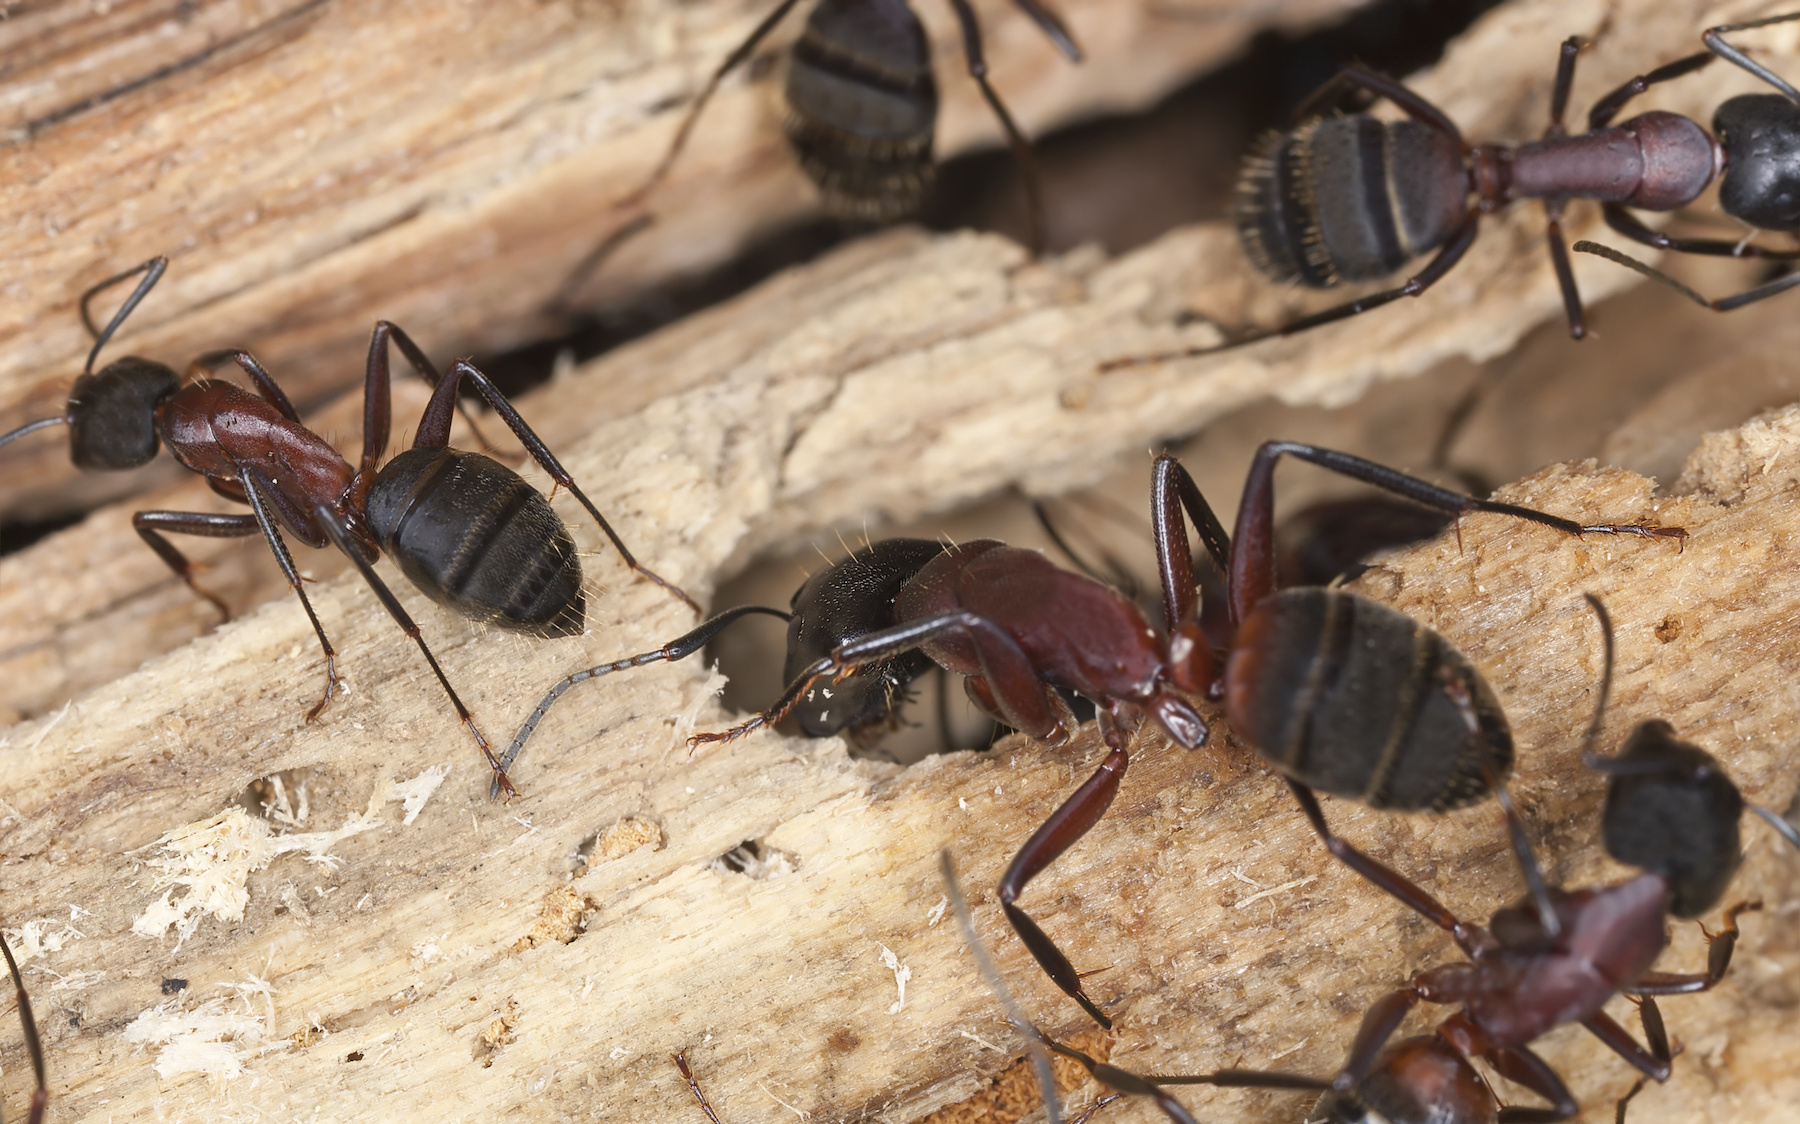 Attack of the Carpenter Ants!